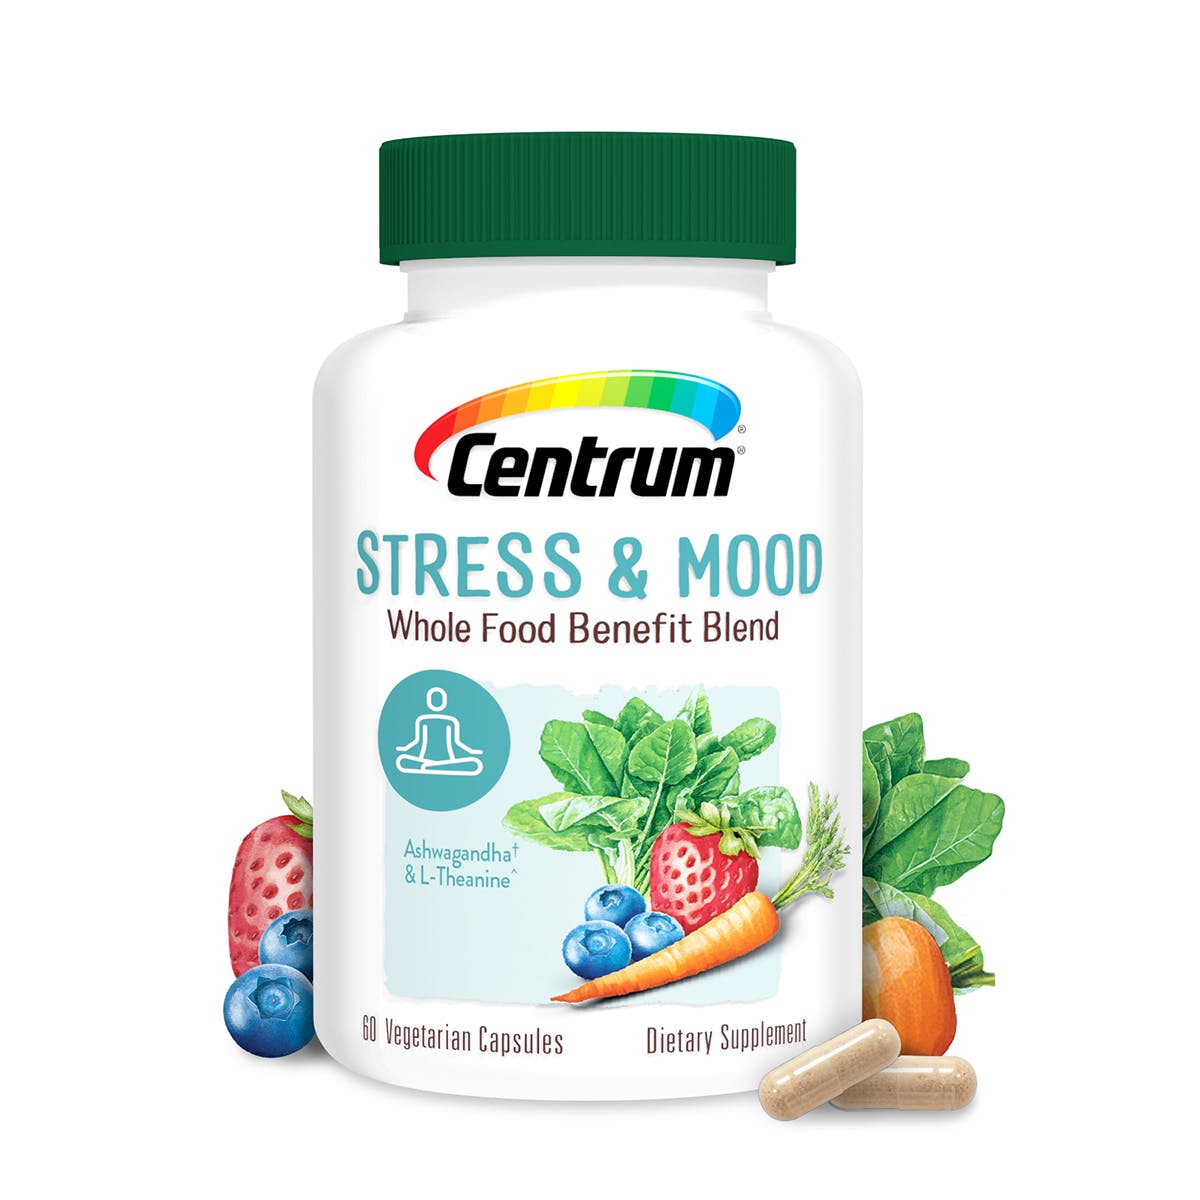 Bottle of Centrum Stress and Mood Whole Food Blend Multivitamin